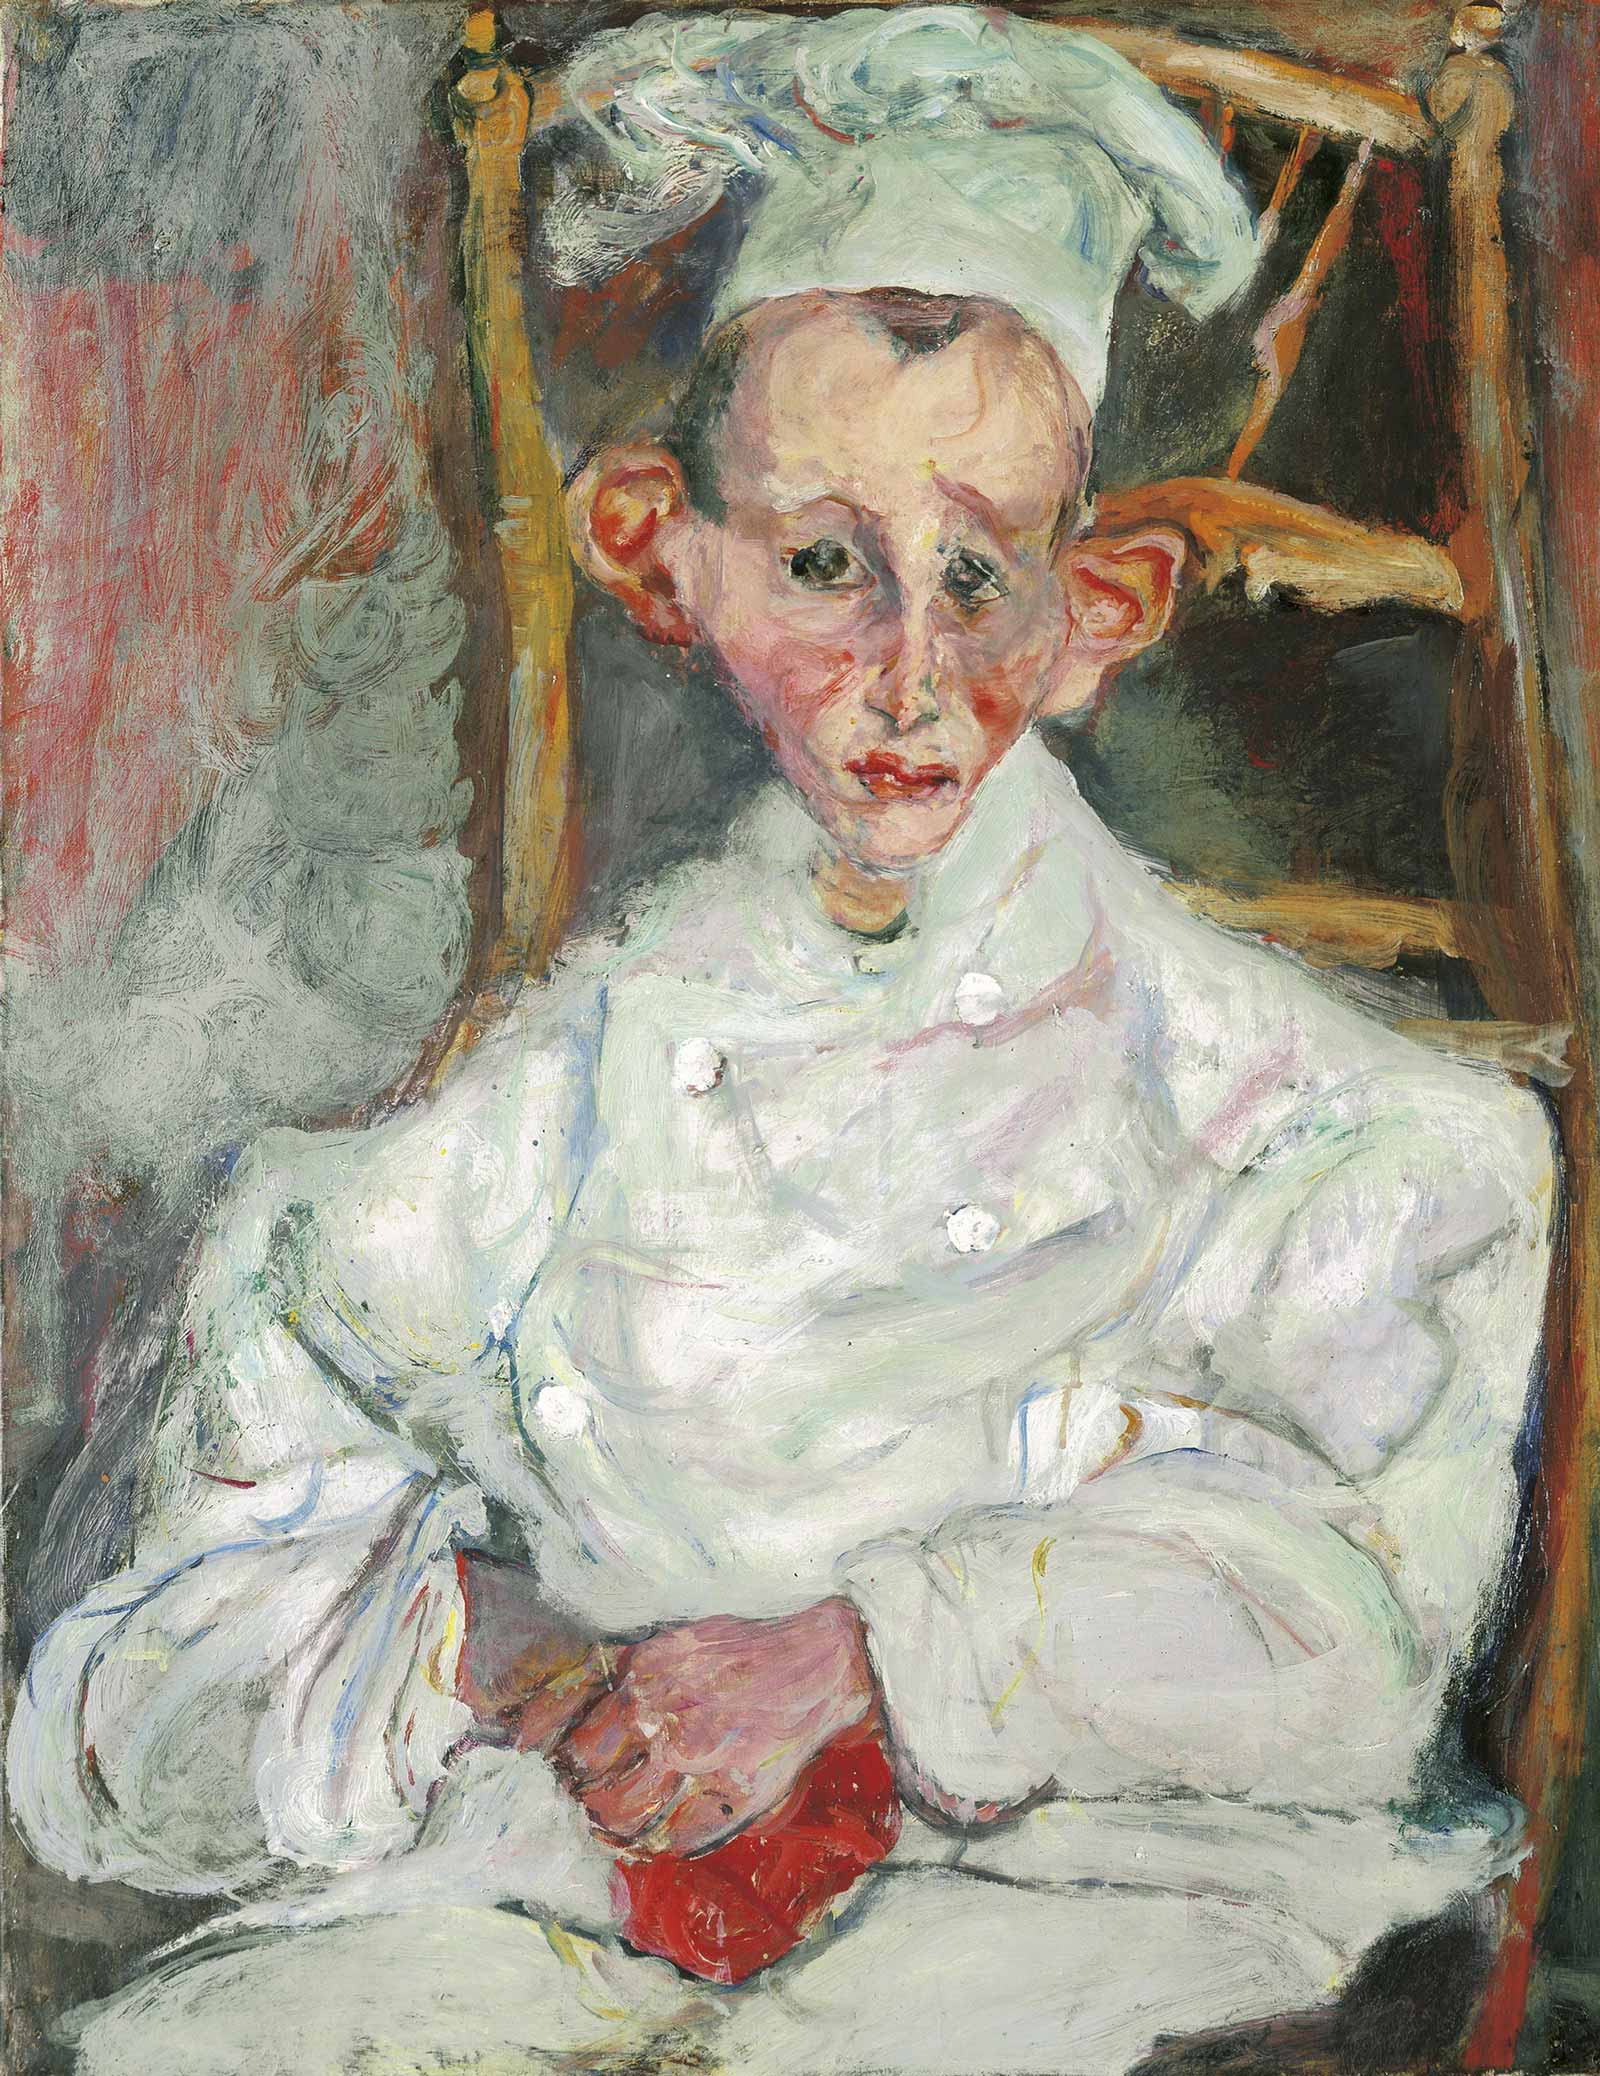 soutine-pastry-cook-cagnes